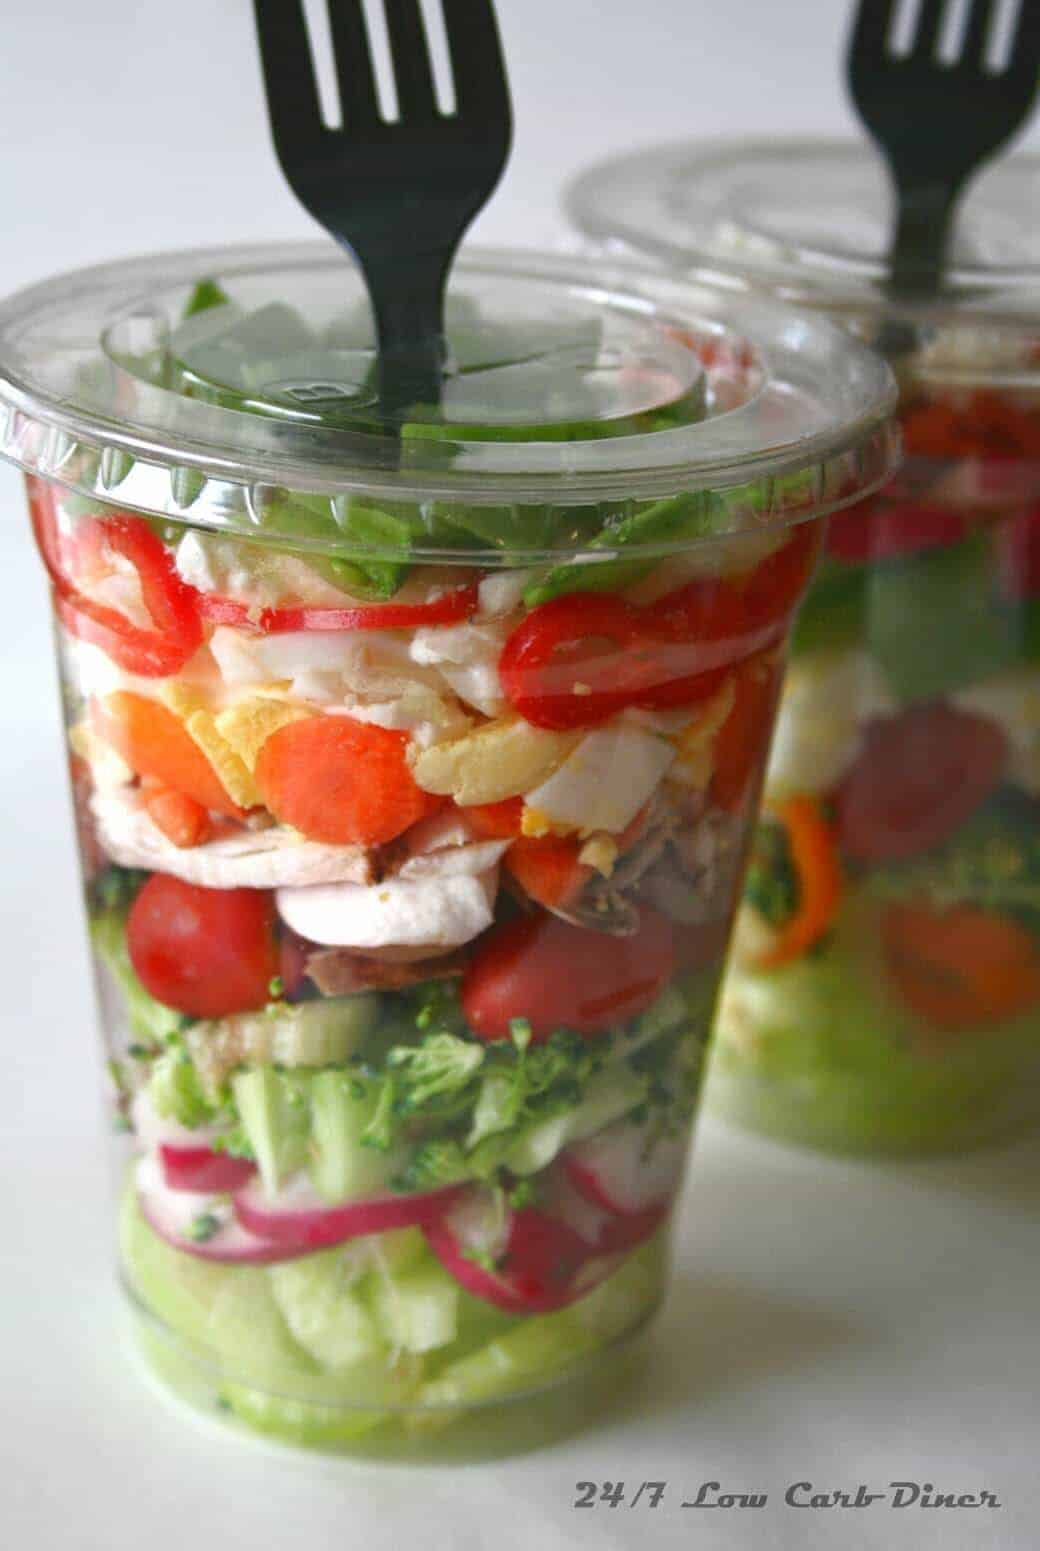 Chopped Salad in a Cup from 247 Low Carb Diner - what should you serve for a large crowd at your party? This is an easy grab and grow food for a crowd and other genius party hacks and tips